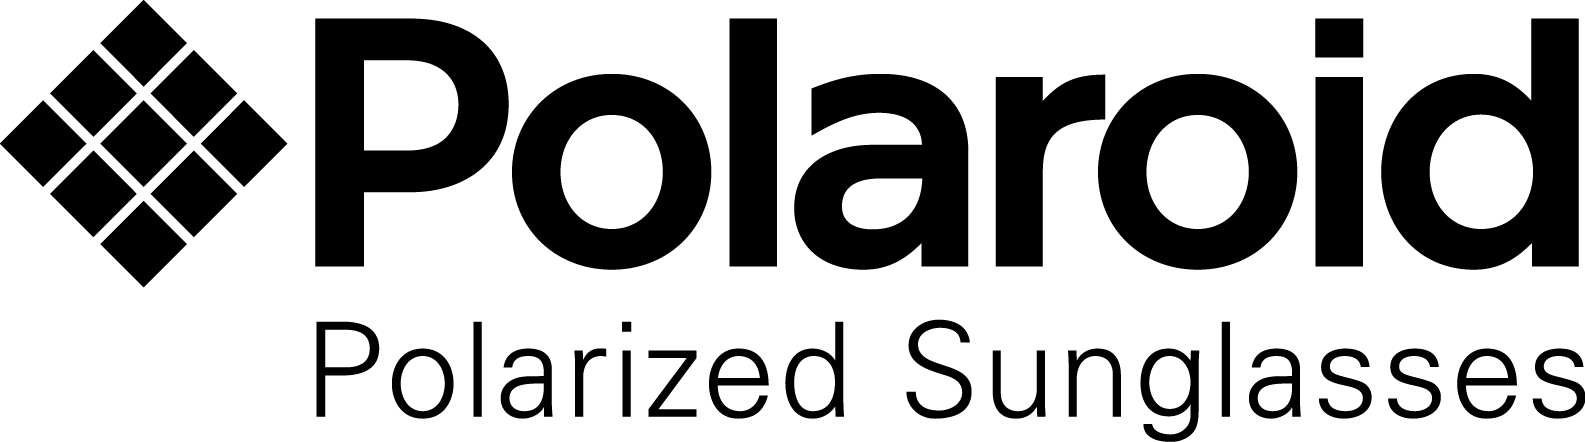 polaroid-sunglasses-logo